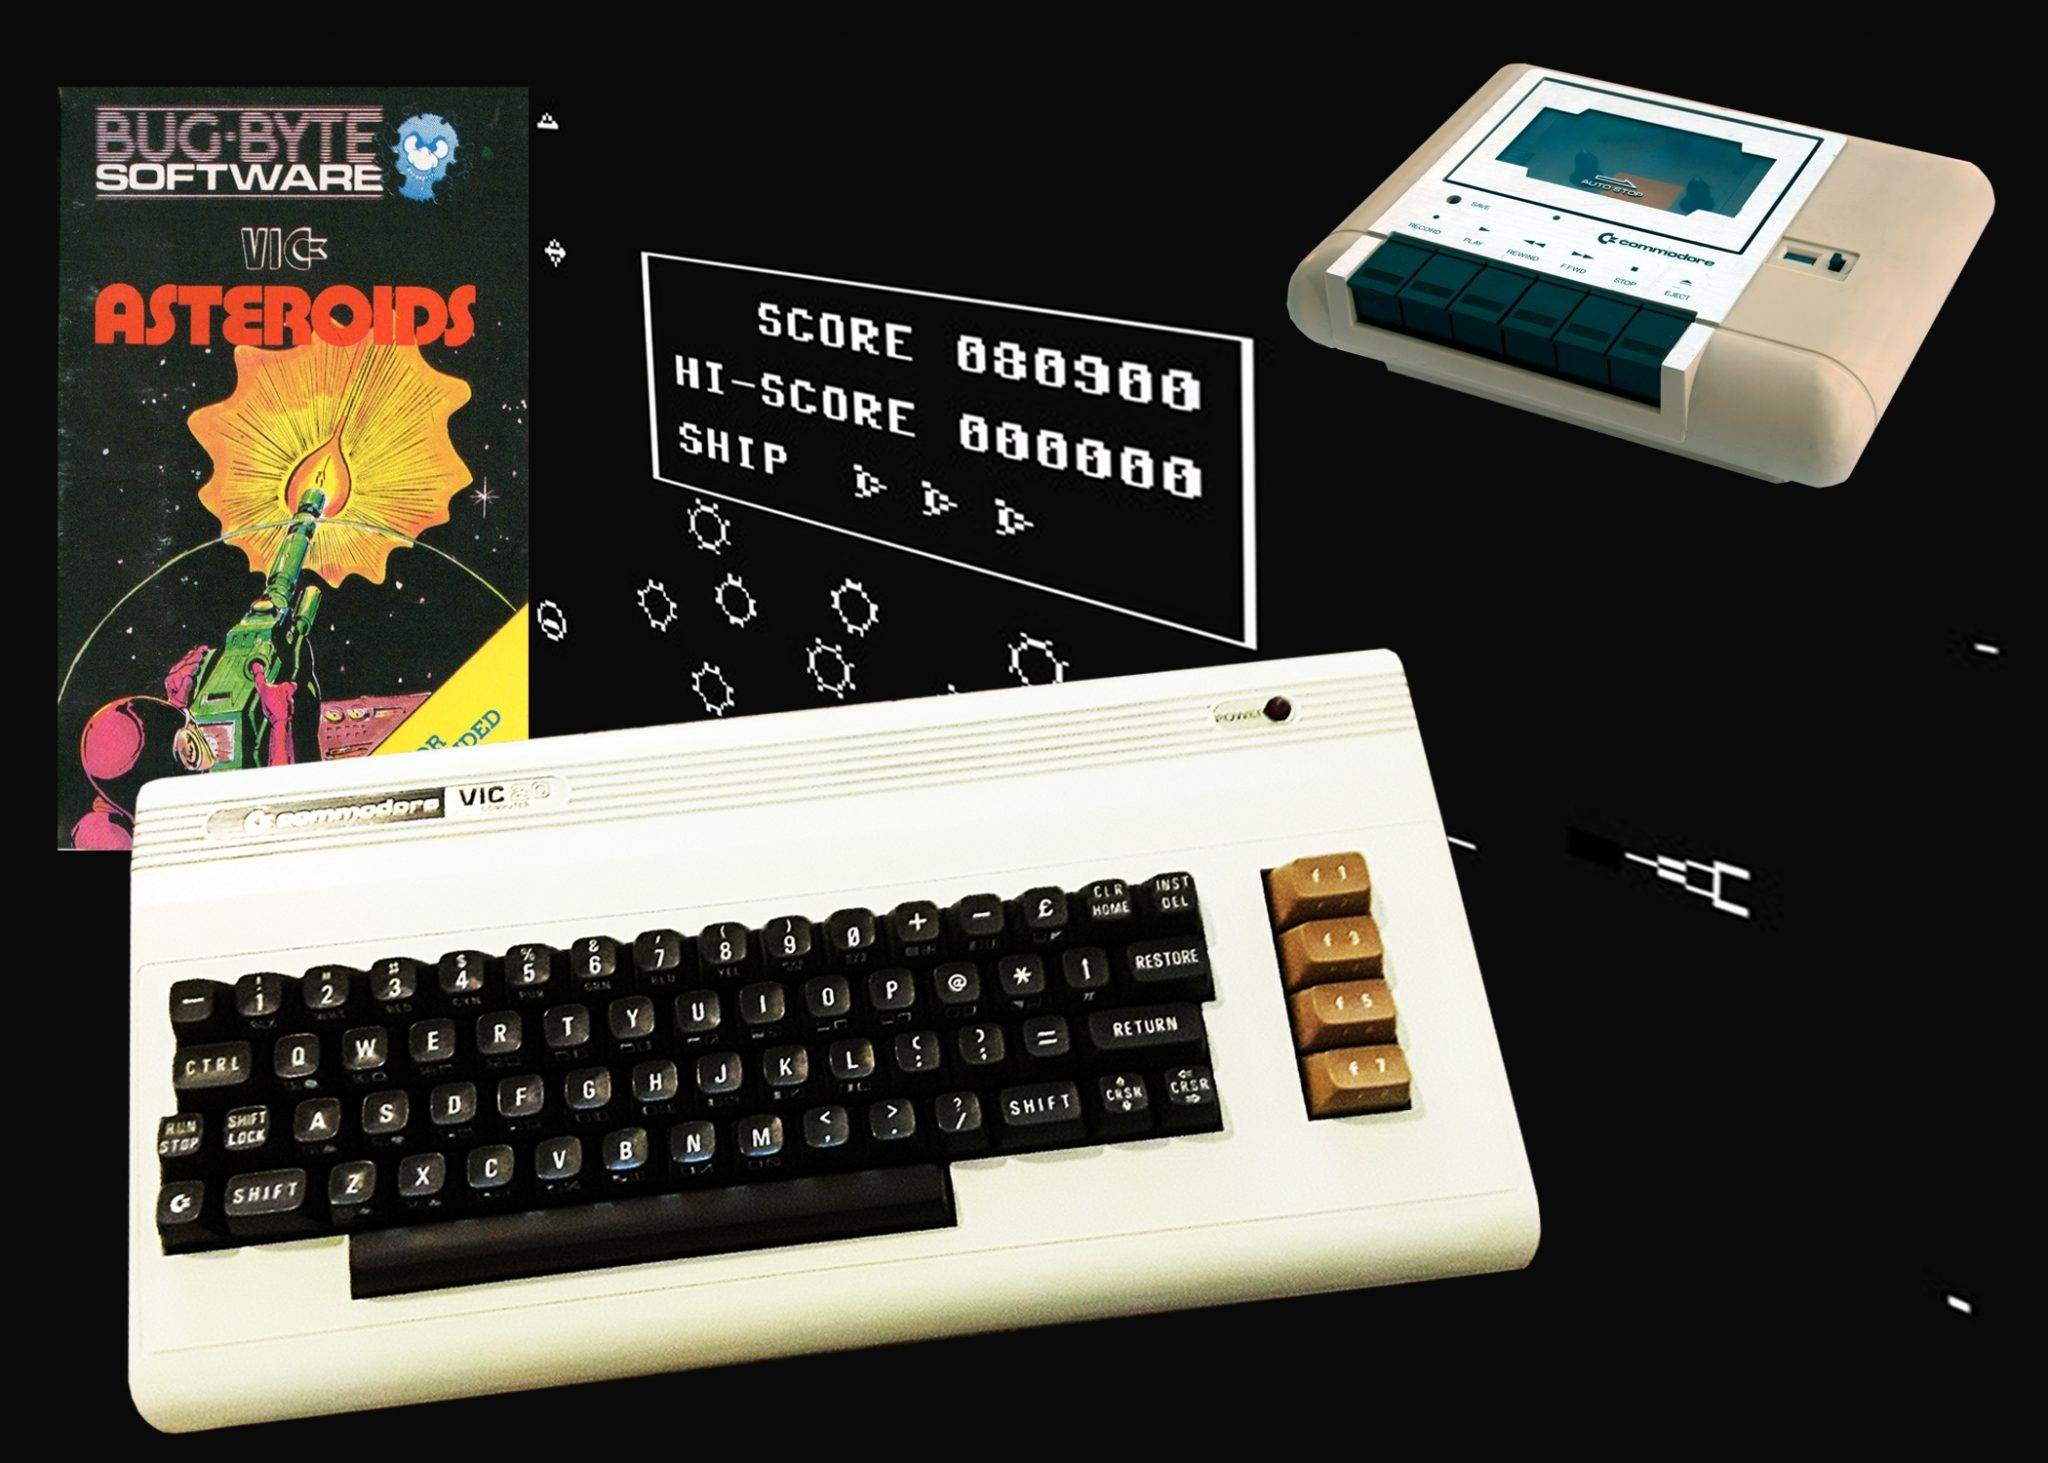 Asteroids on the Vic 20 wasn't much to look at, but it sure did test your button mashing finger.